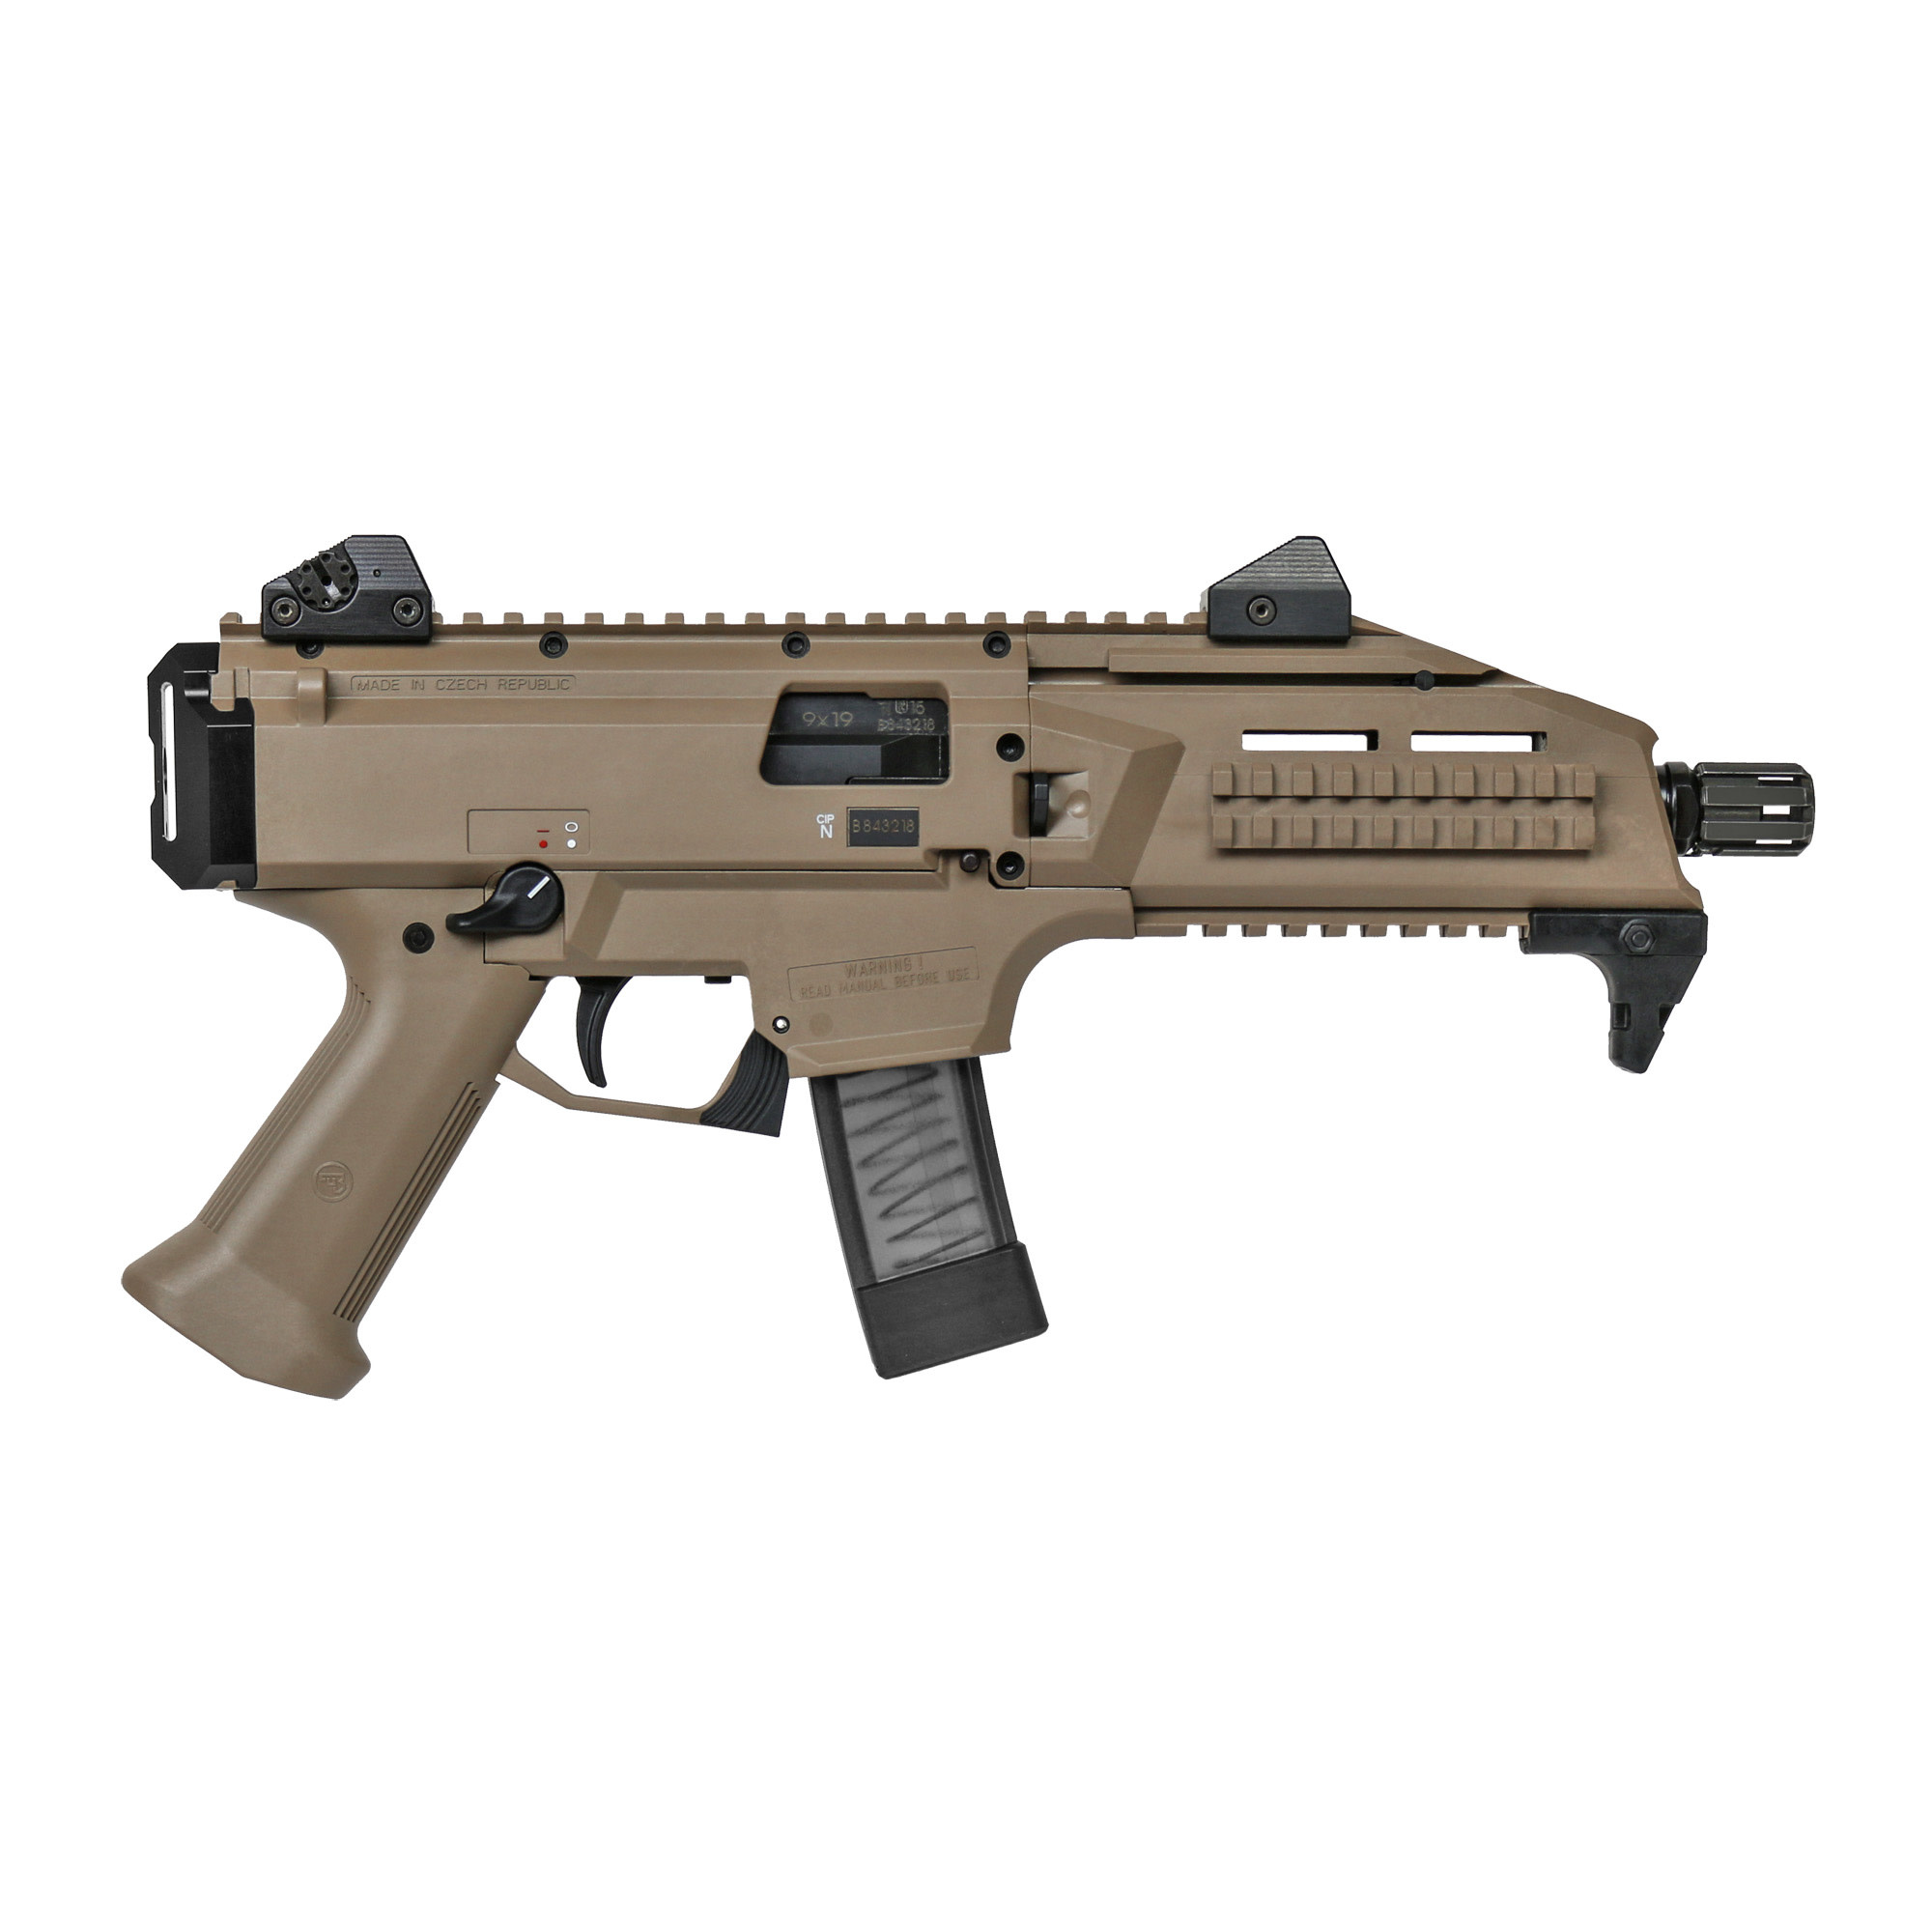 "CZ, Scorpion EVO 3 S1, 9MM, 7.7"" Threaded Barrel, 1/2X28 Thread Pitch, Polymer Frame, FDE Finish, 10 Rounds"